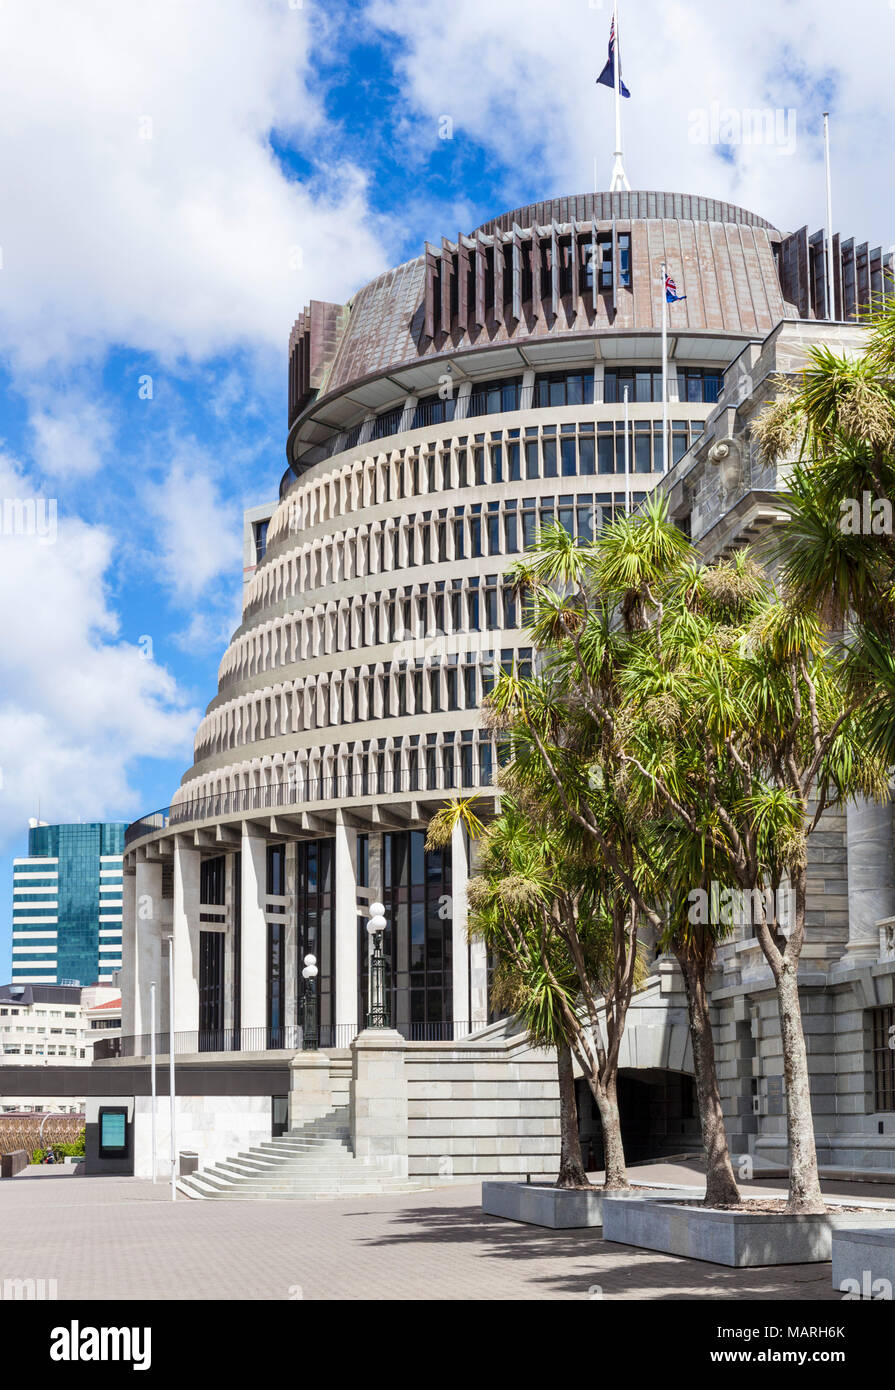 new zealand wellington new zealand The  Beehive by Sir Basil Spence  new zealand government buildings Wellington North Island new zealand nz - Stock Image